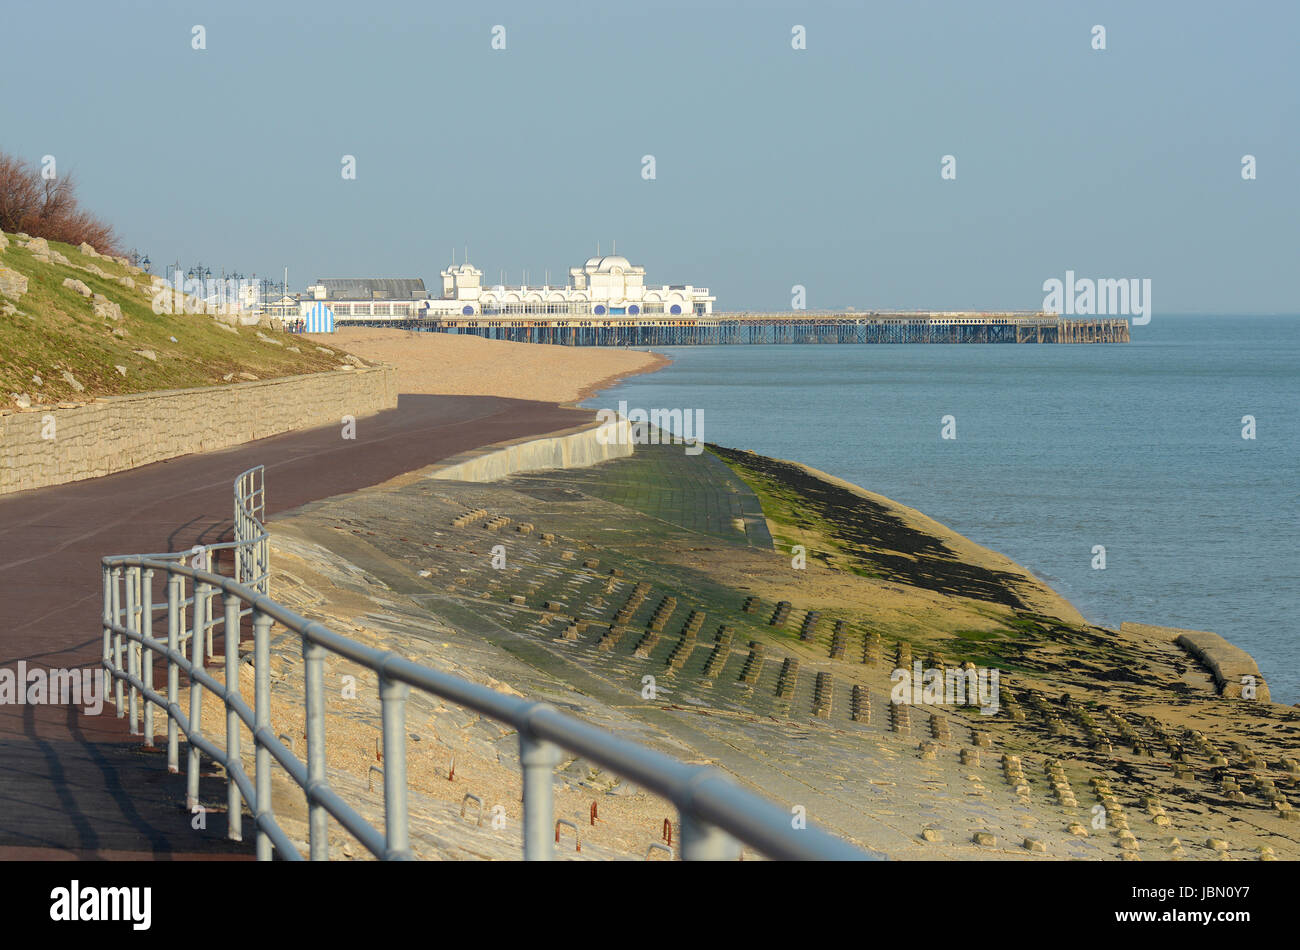 Seafront promenade towards Pier at Southsea in Portsmouth. Hampshire. England. Stock Photo